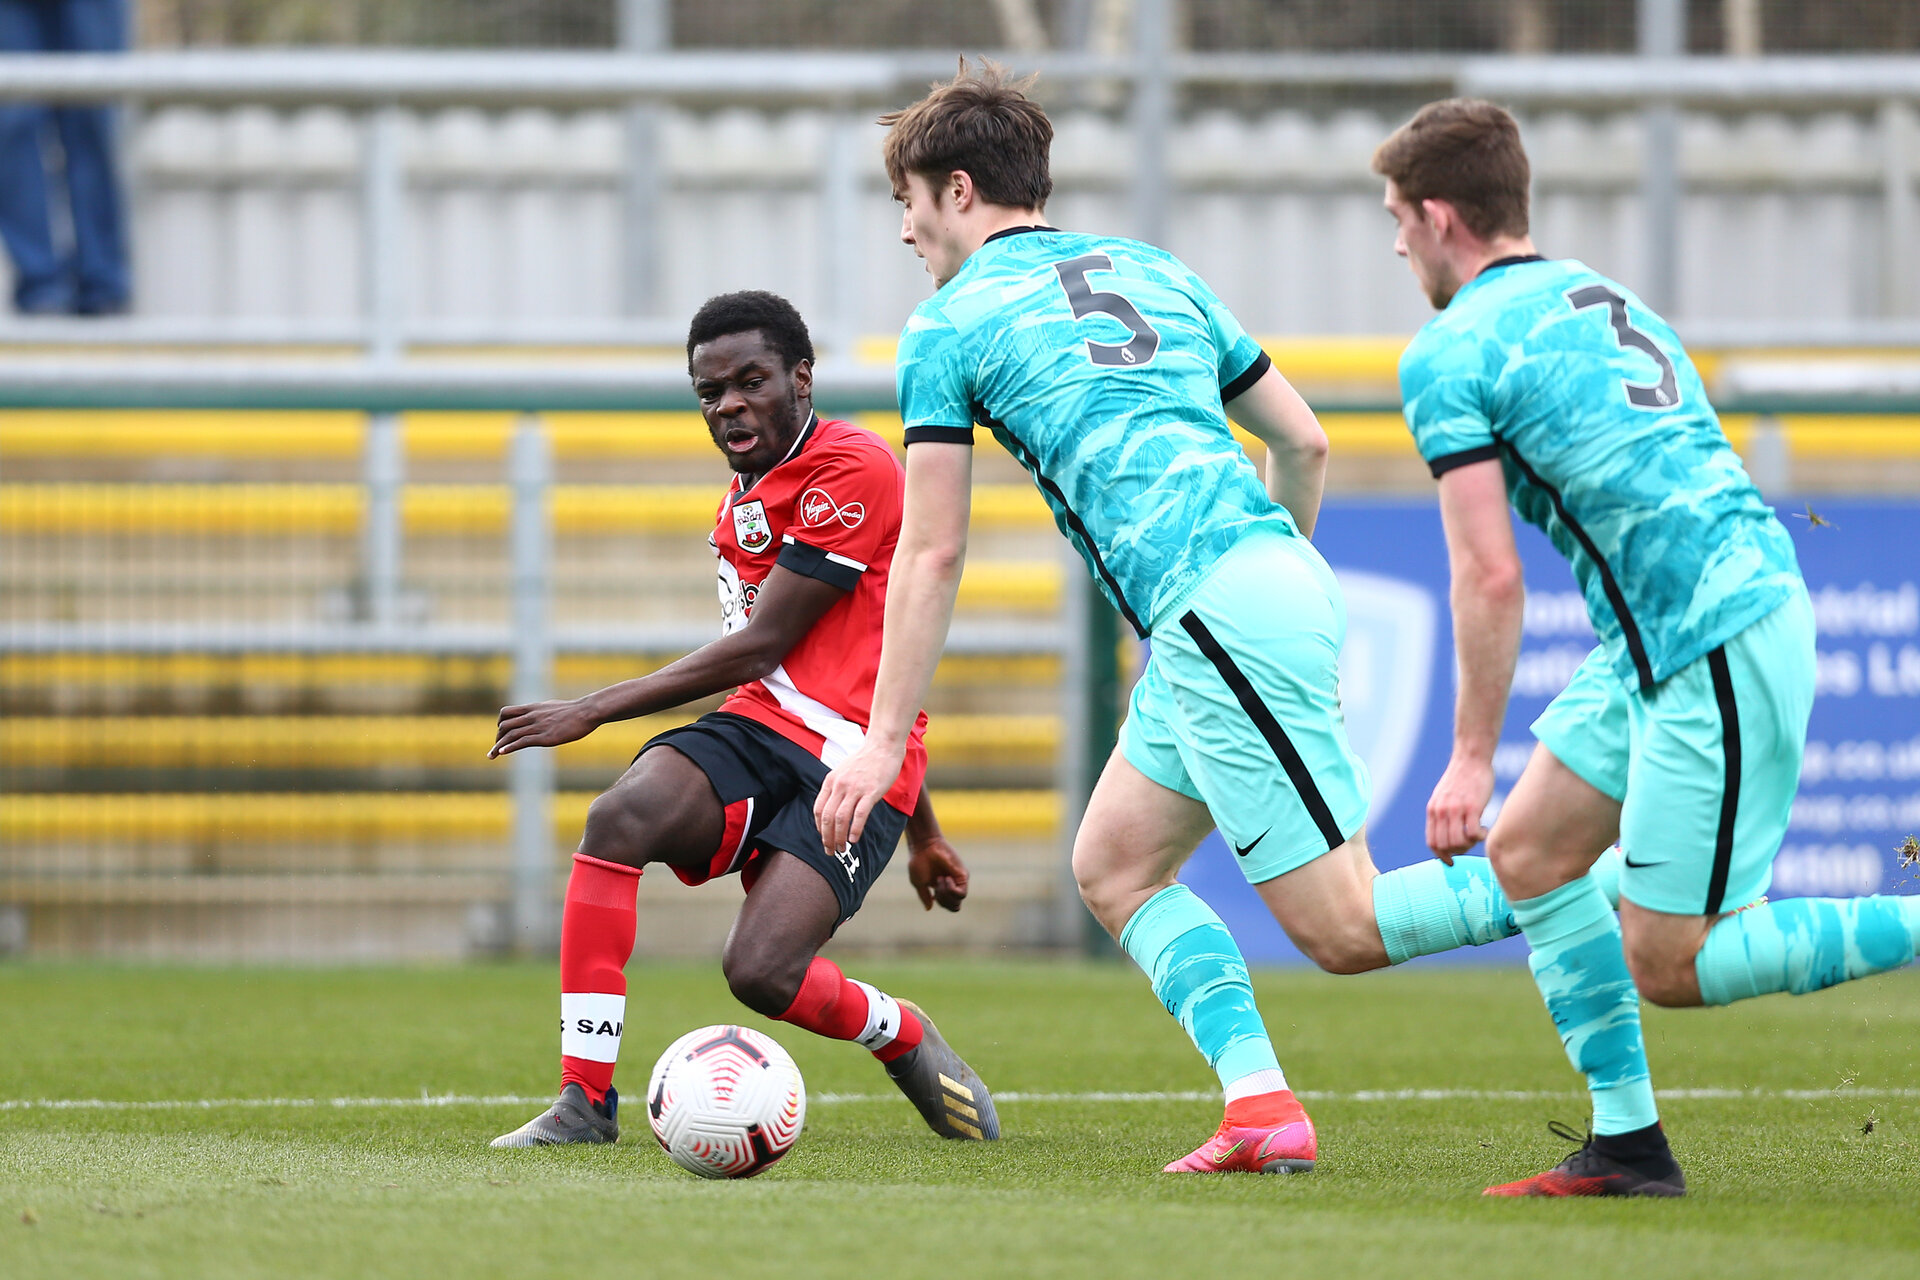 SOUTHAMPTON, ENGLAND - MARCH 21:  during the Premier League 2 match between Southampton B Team and Liverpool at the Snows Stadium on March 21, 2021 in Southampton, England.  (Photo by Isabelle Field/Southampton FC via Getty Images)